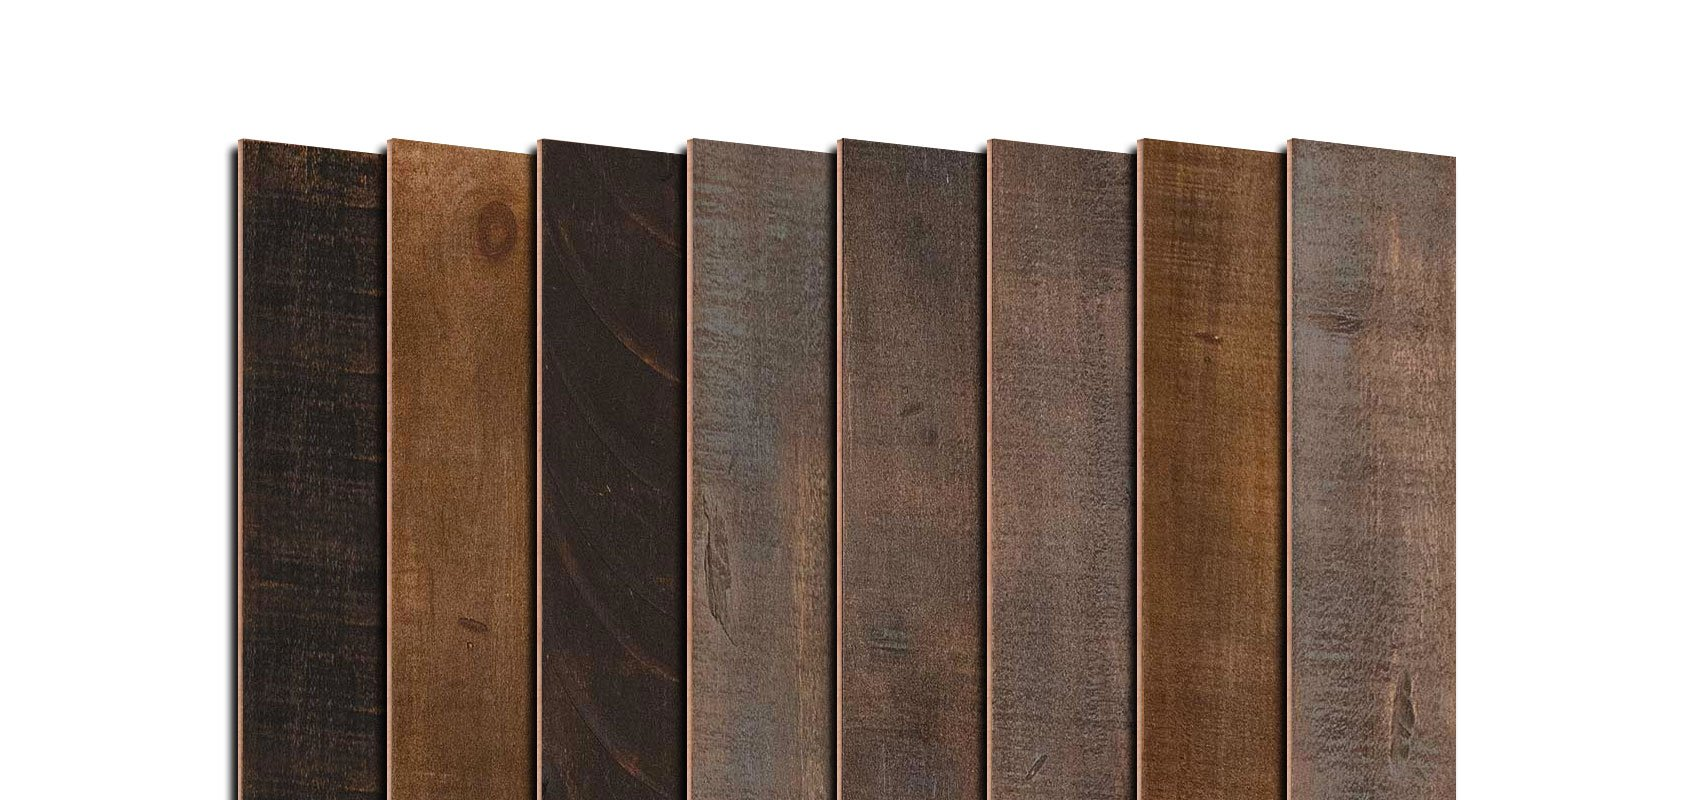 AS-IS BRAND Wood Walls (RAW-ISH) - Glue & Stick Aged Wood Planks (20 Sq. Ft) by AS-IS (Image #2)